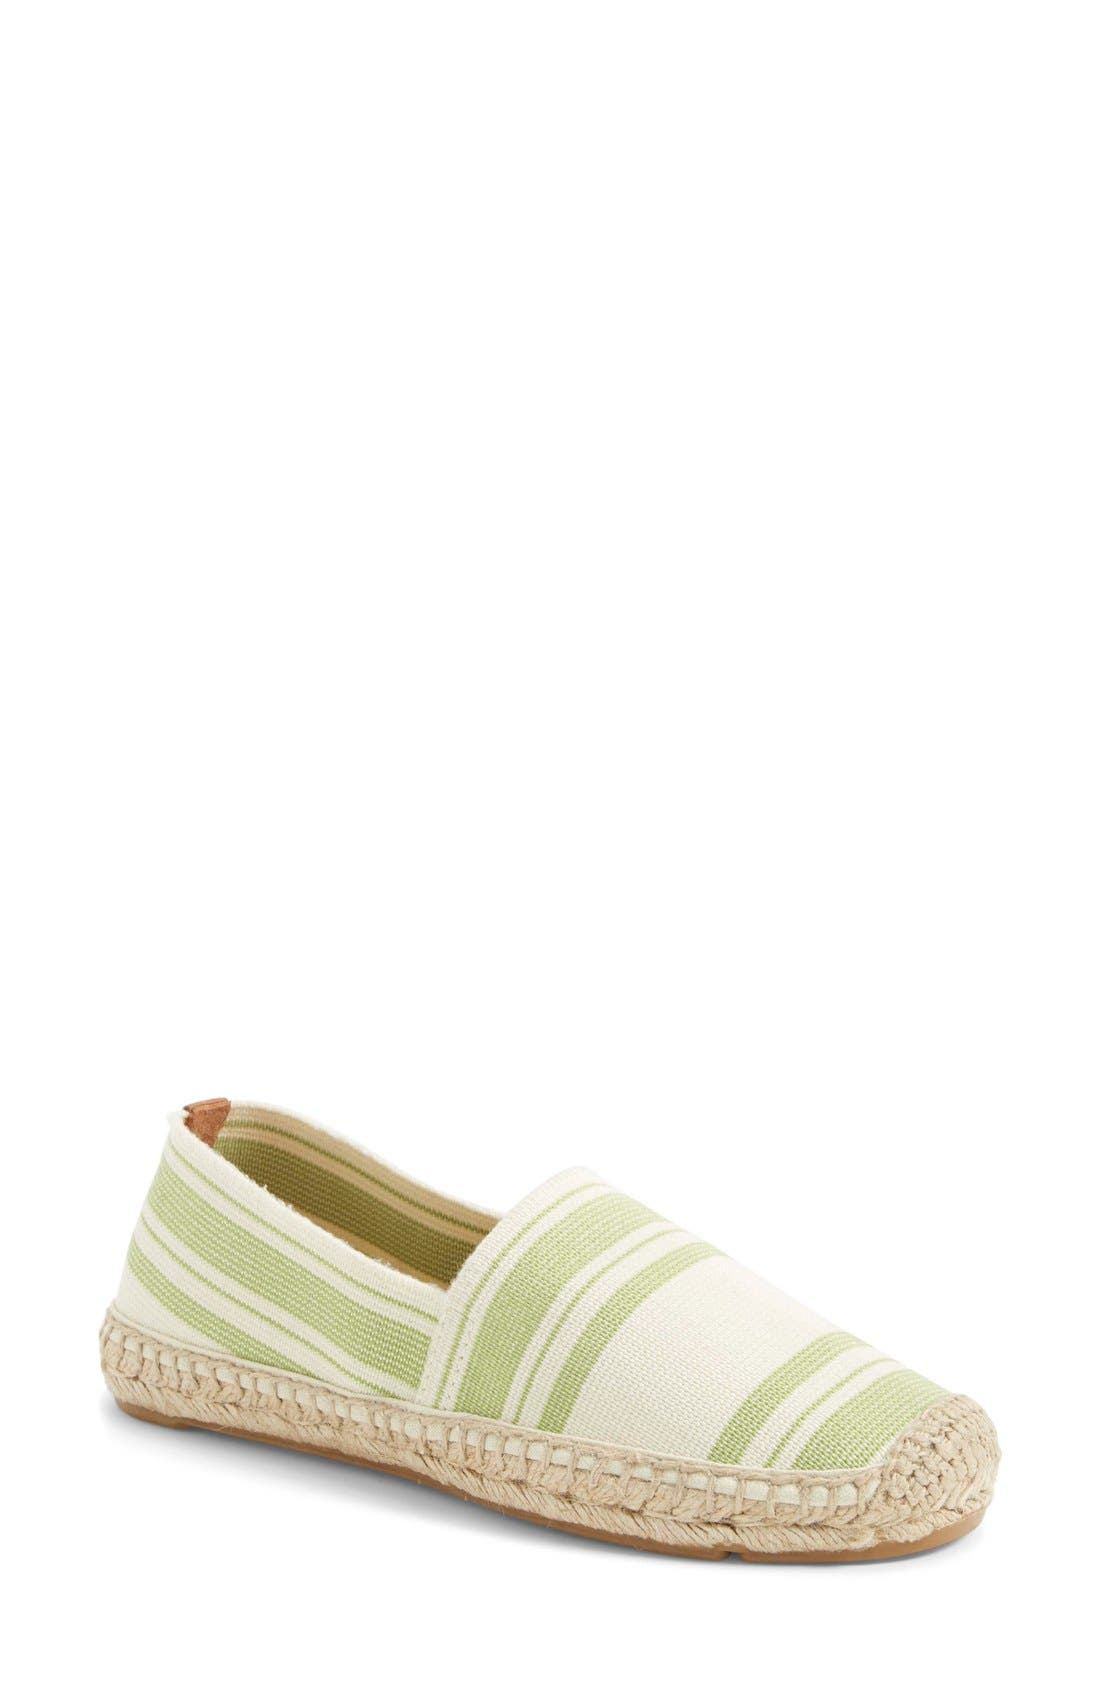 Main Image - Tory Burch Stripe Espadrille Flat (Women)